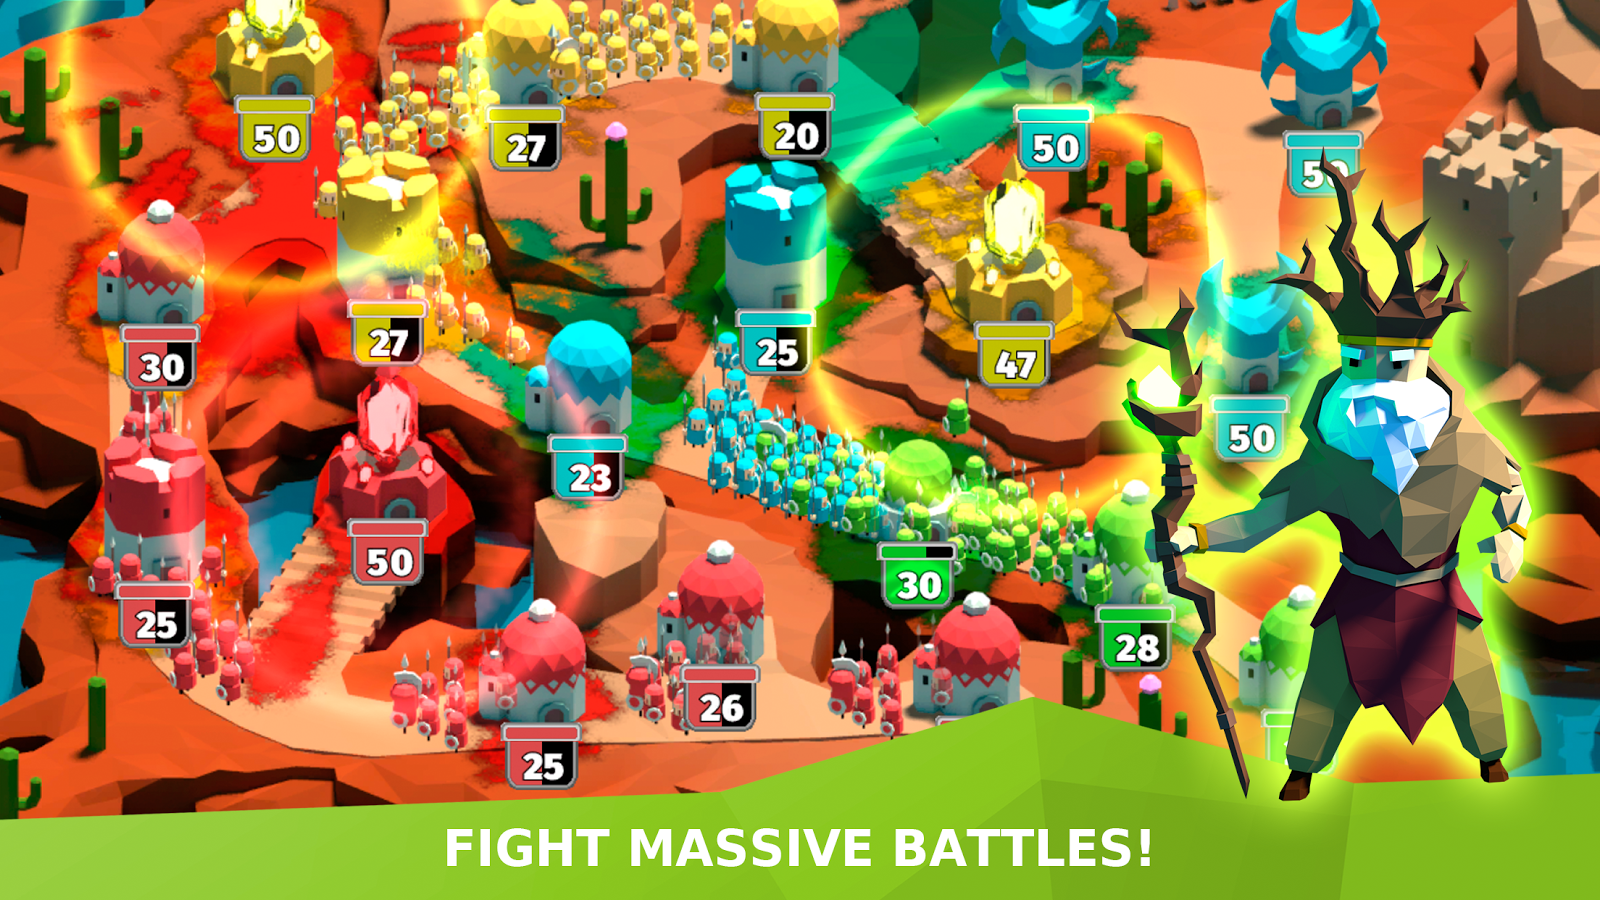 BattleTime Screenshot 1